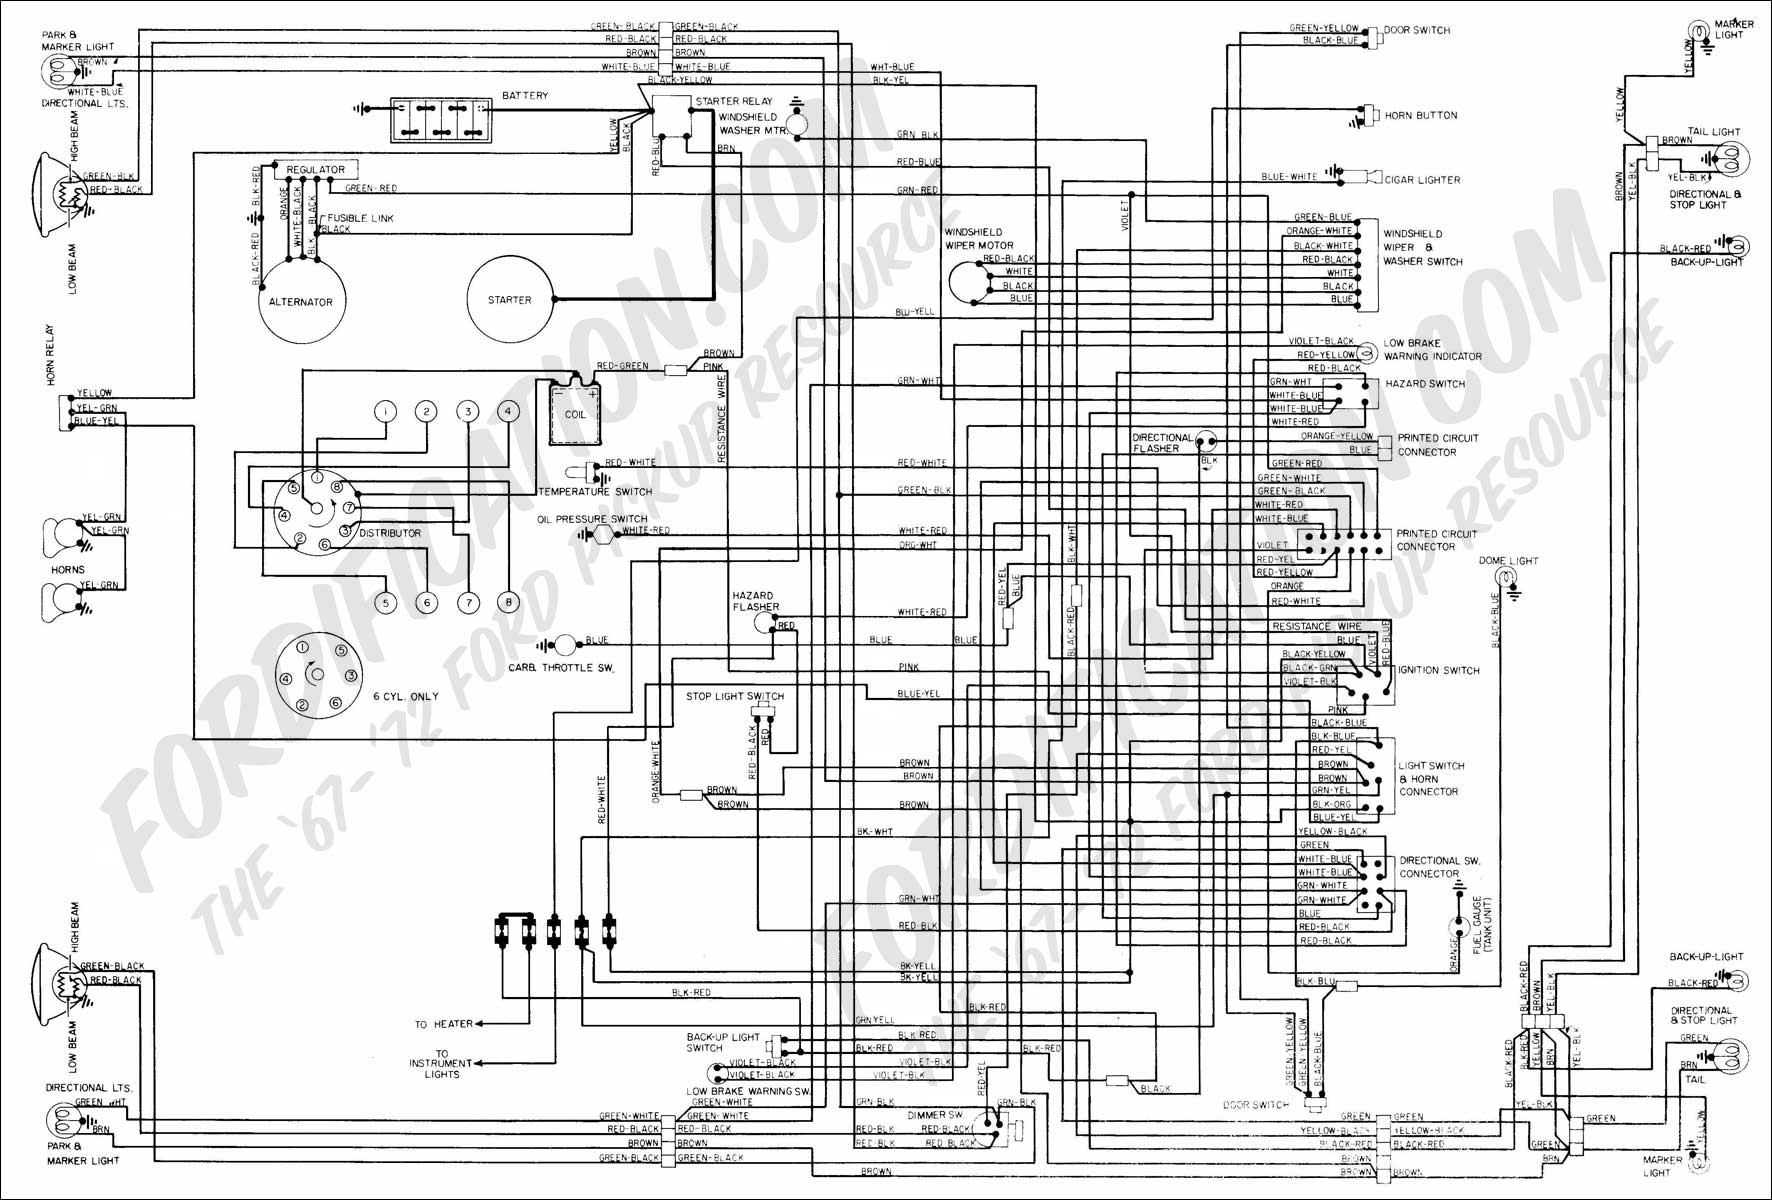 Ford F650 Wiring 97 - List of Wiring Diagrams F Wiring Diagram on